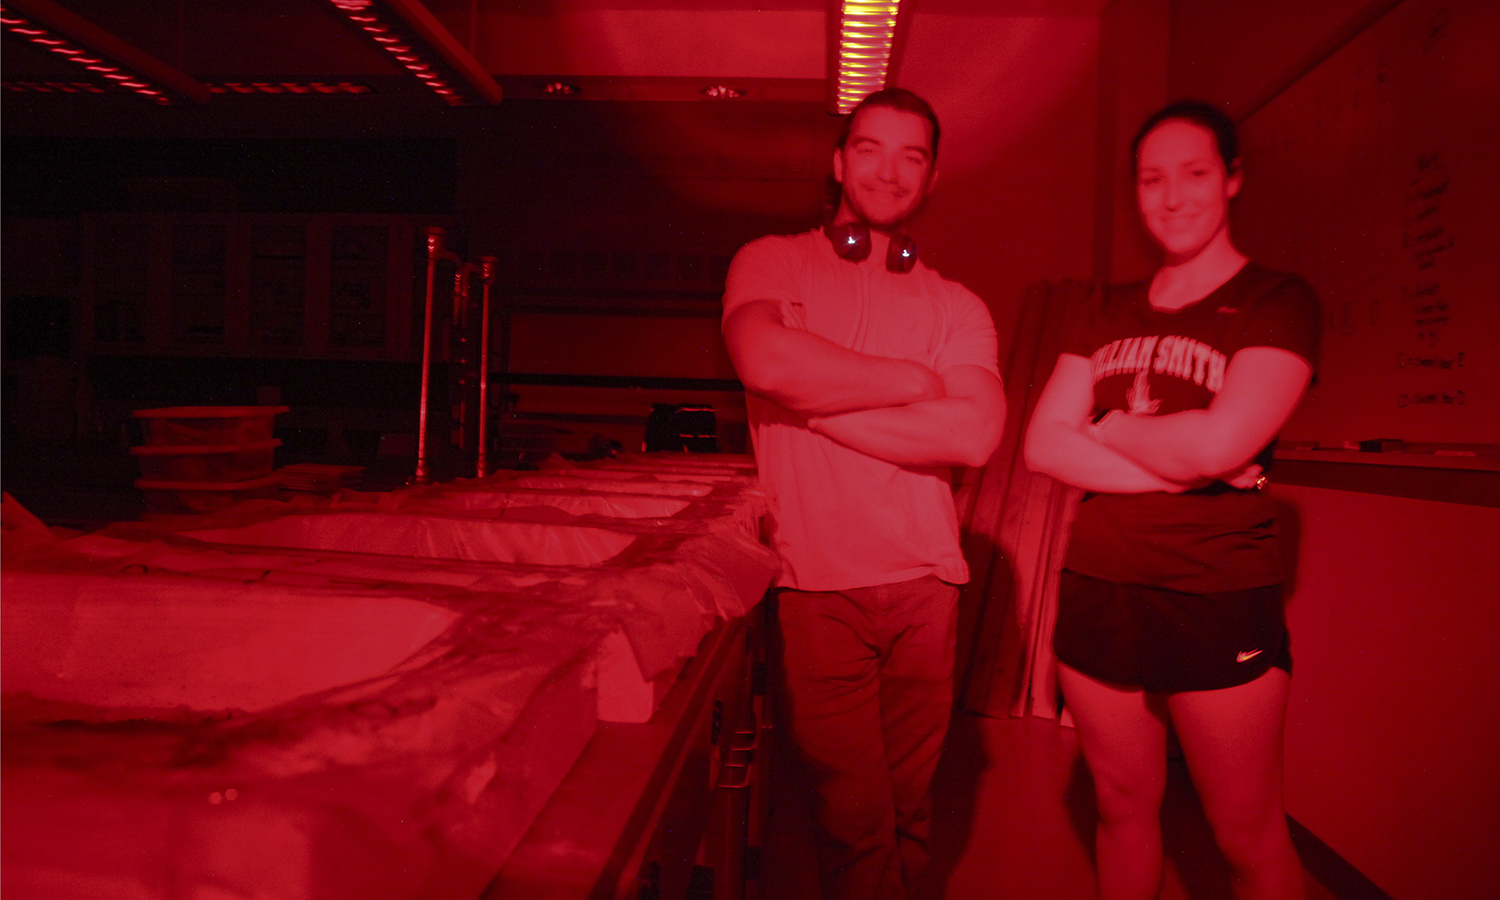 Josh Pugliese '20 and Anna Leffer '20 pose for a photo in the lab. The pair are using infrared lighting to study the behavioral properties of salamanders.